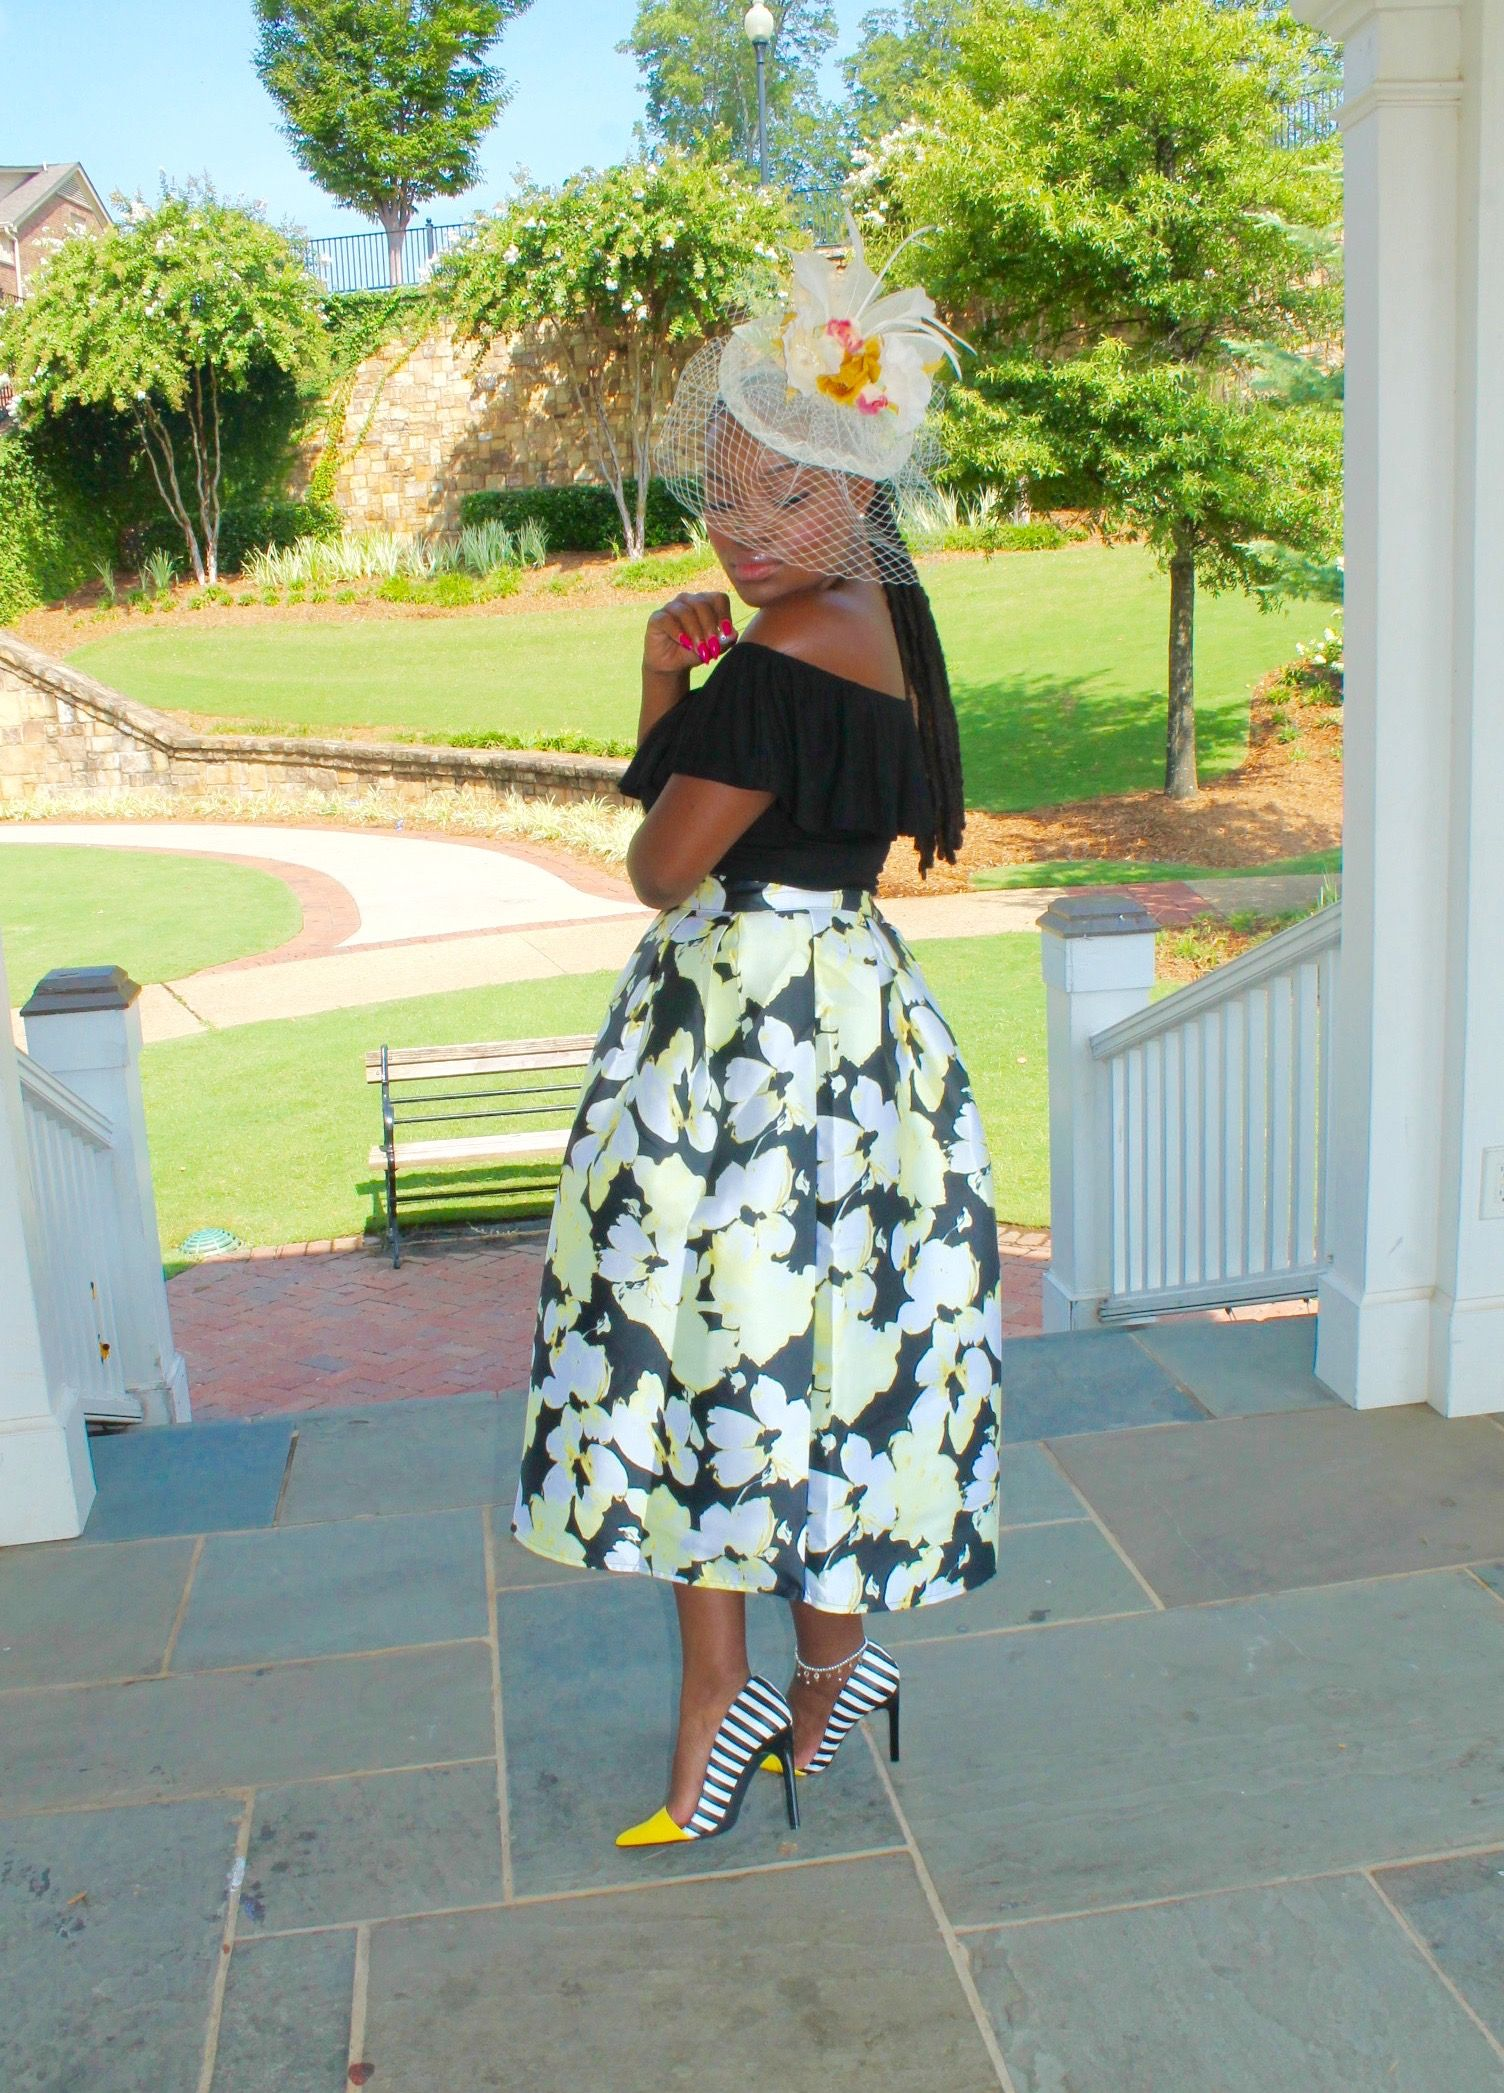 STYLE: TEA PARTY ATTIRE- FLORAL SKIRT X BODYSUIT | Tea party attire ...